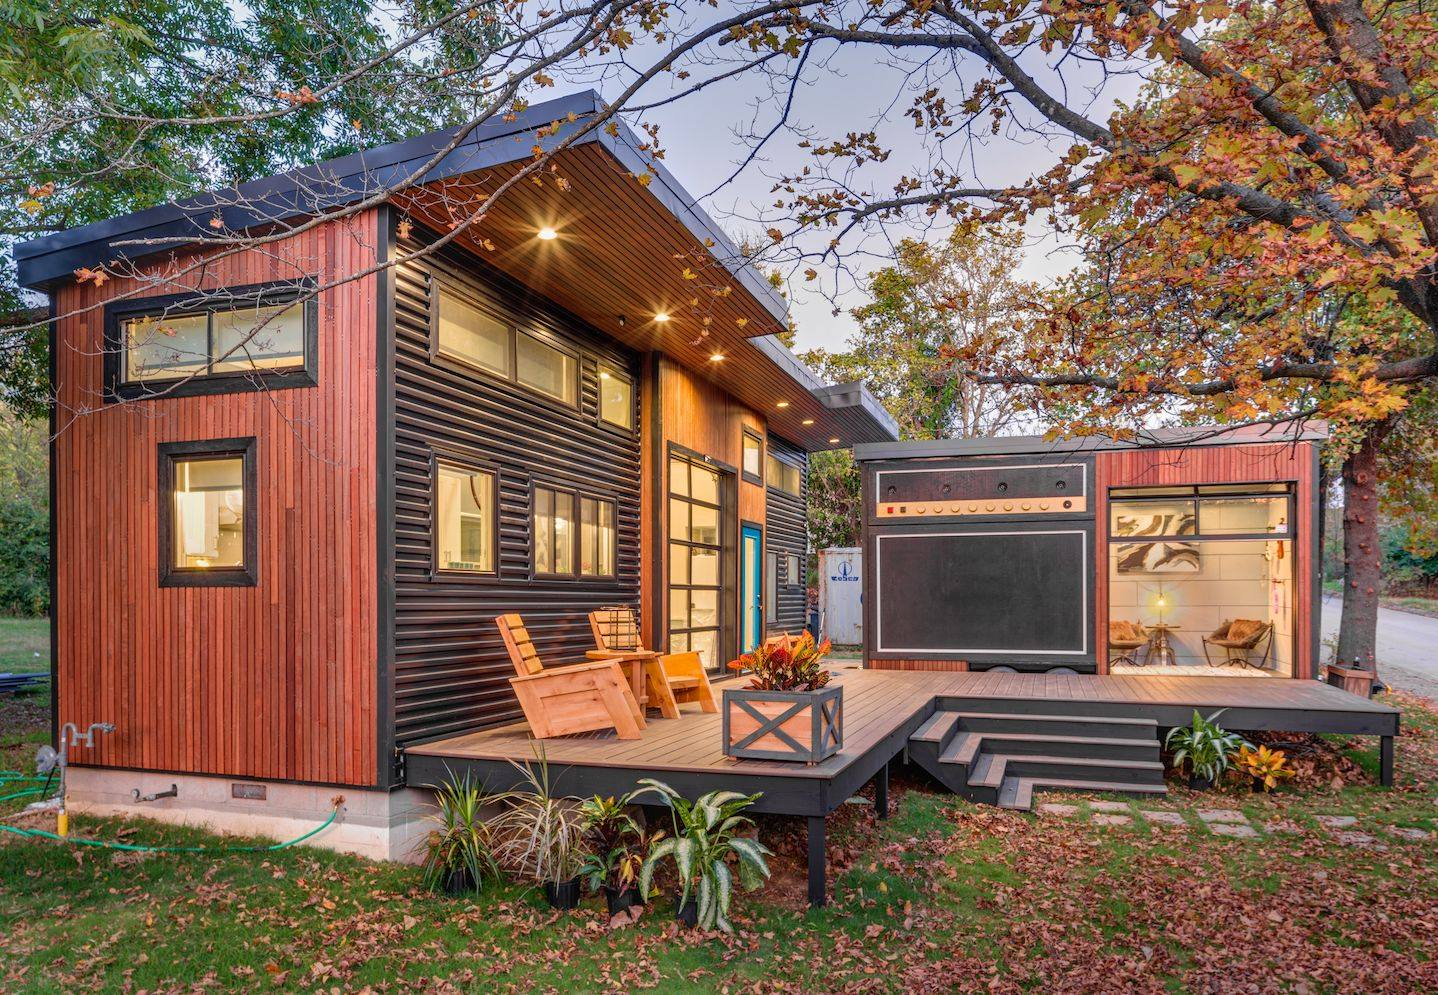 VIVA Collectiv on Designing a Tiny Home